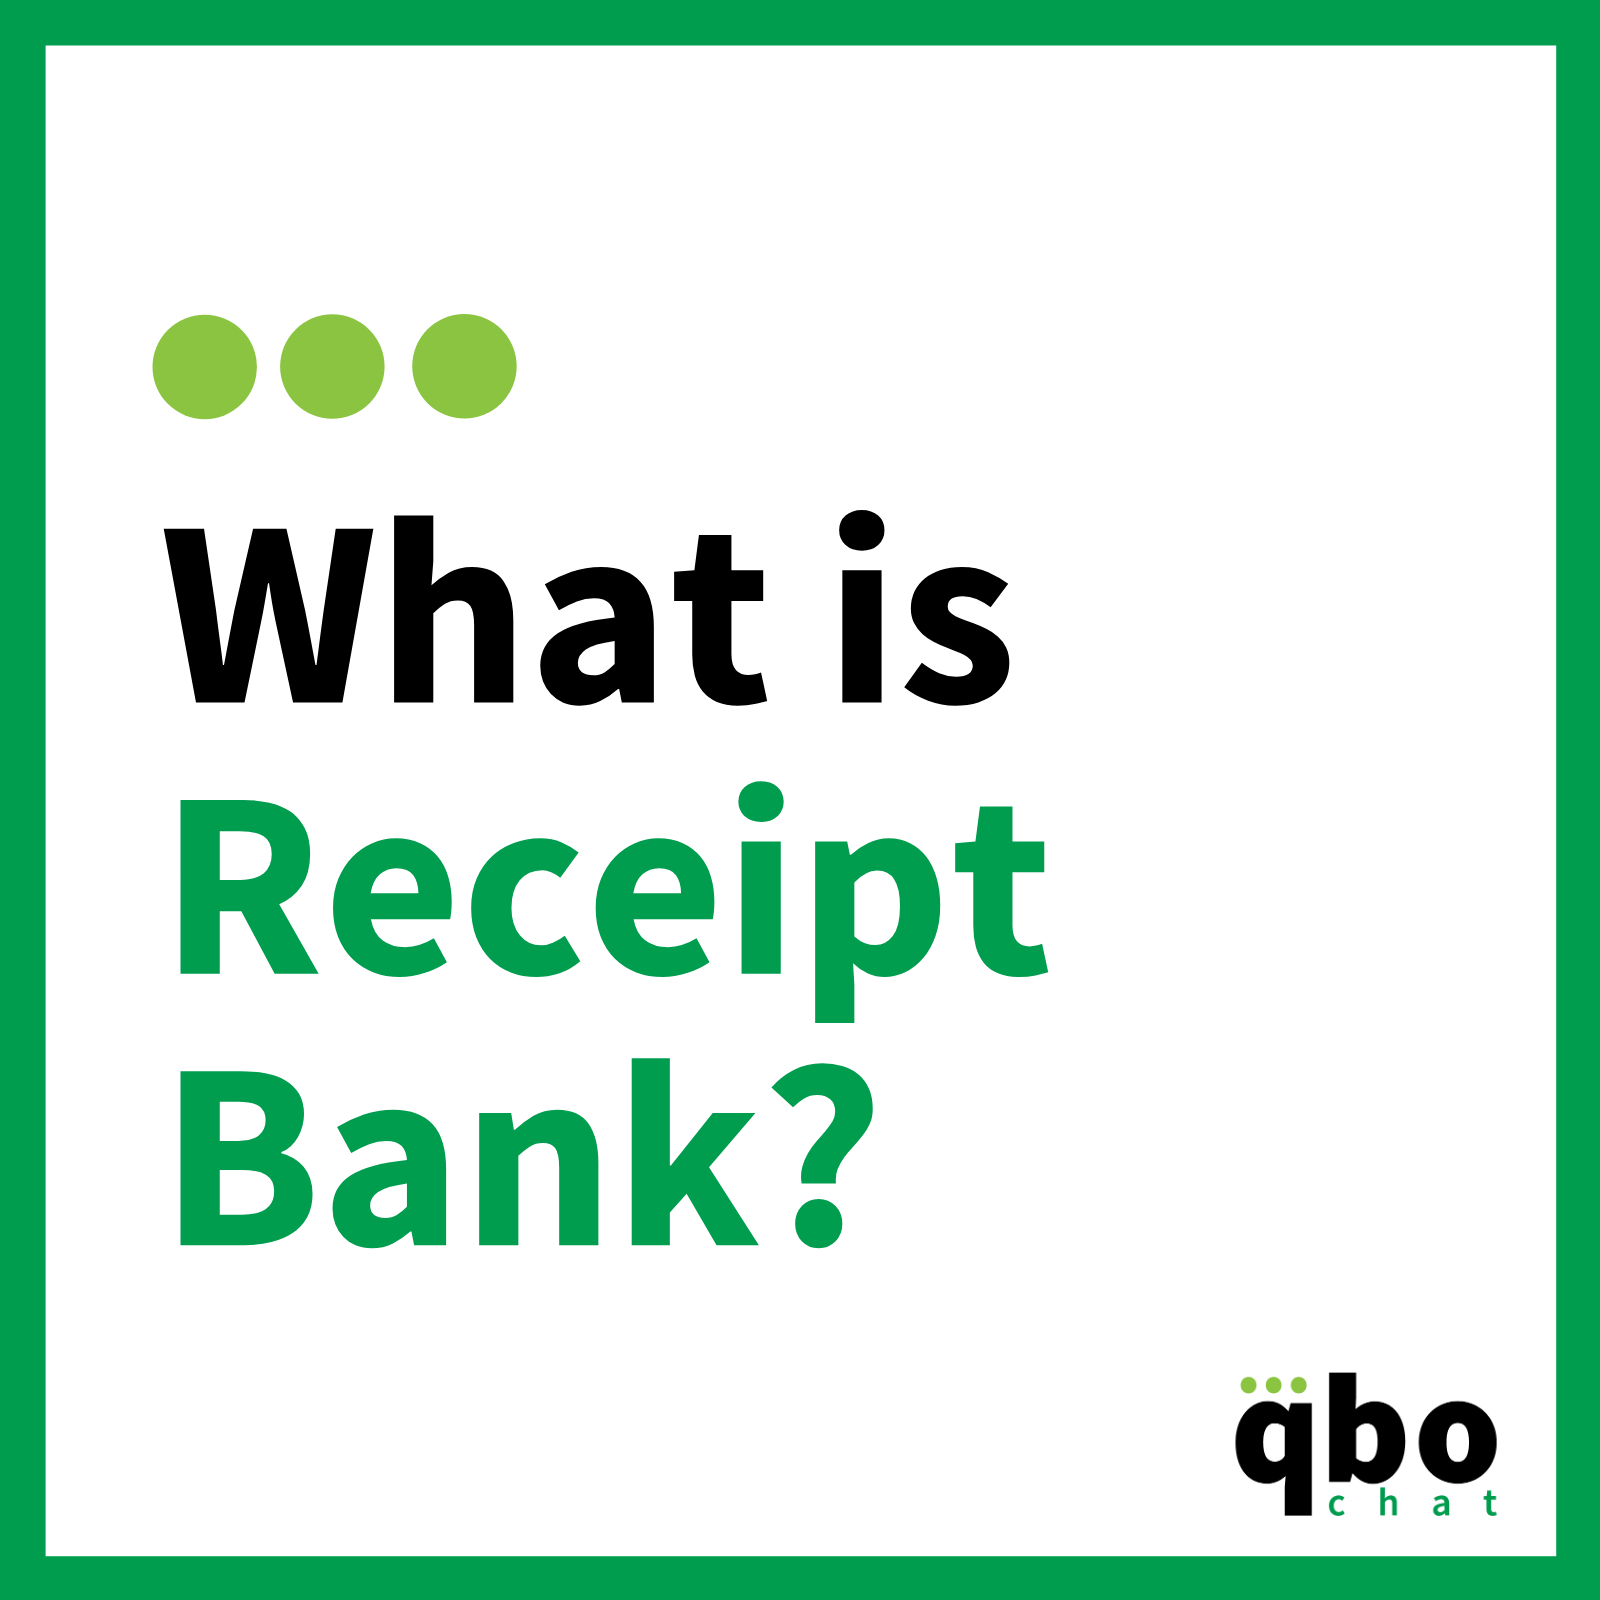 What is Receipt Bank_